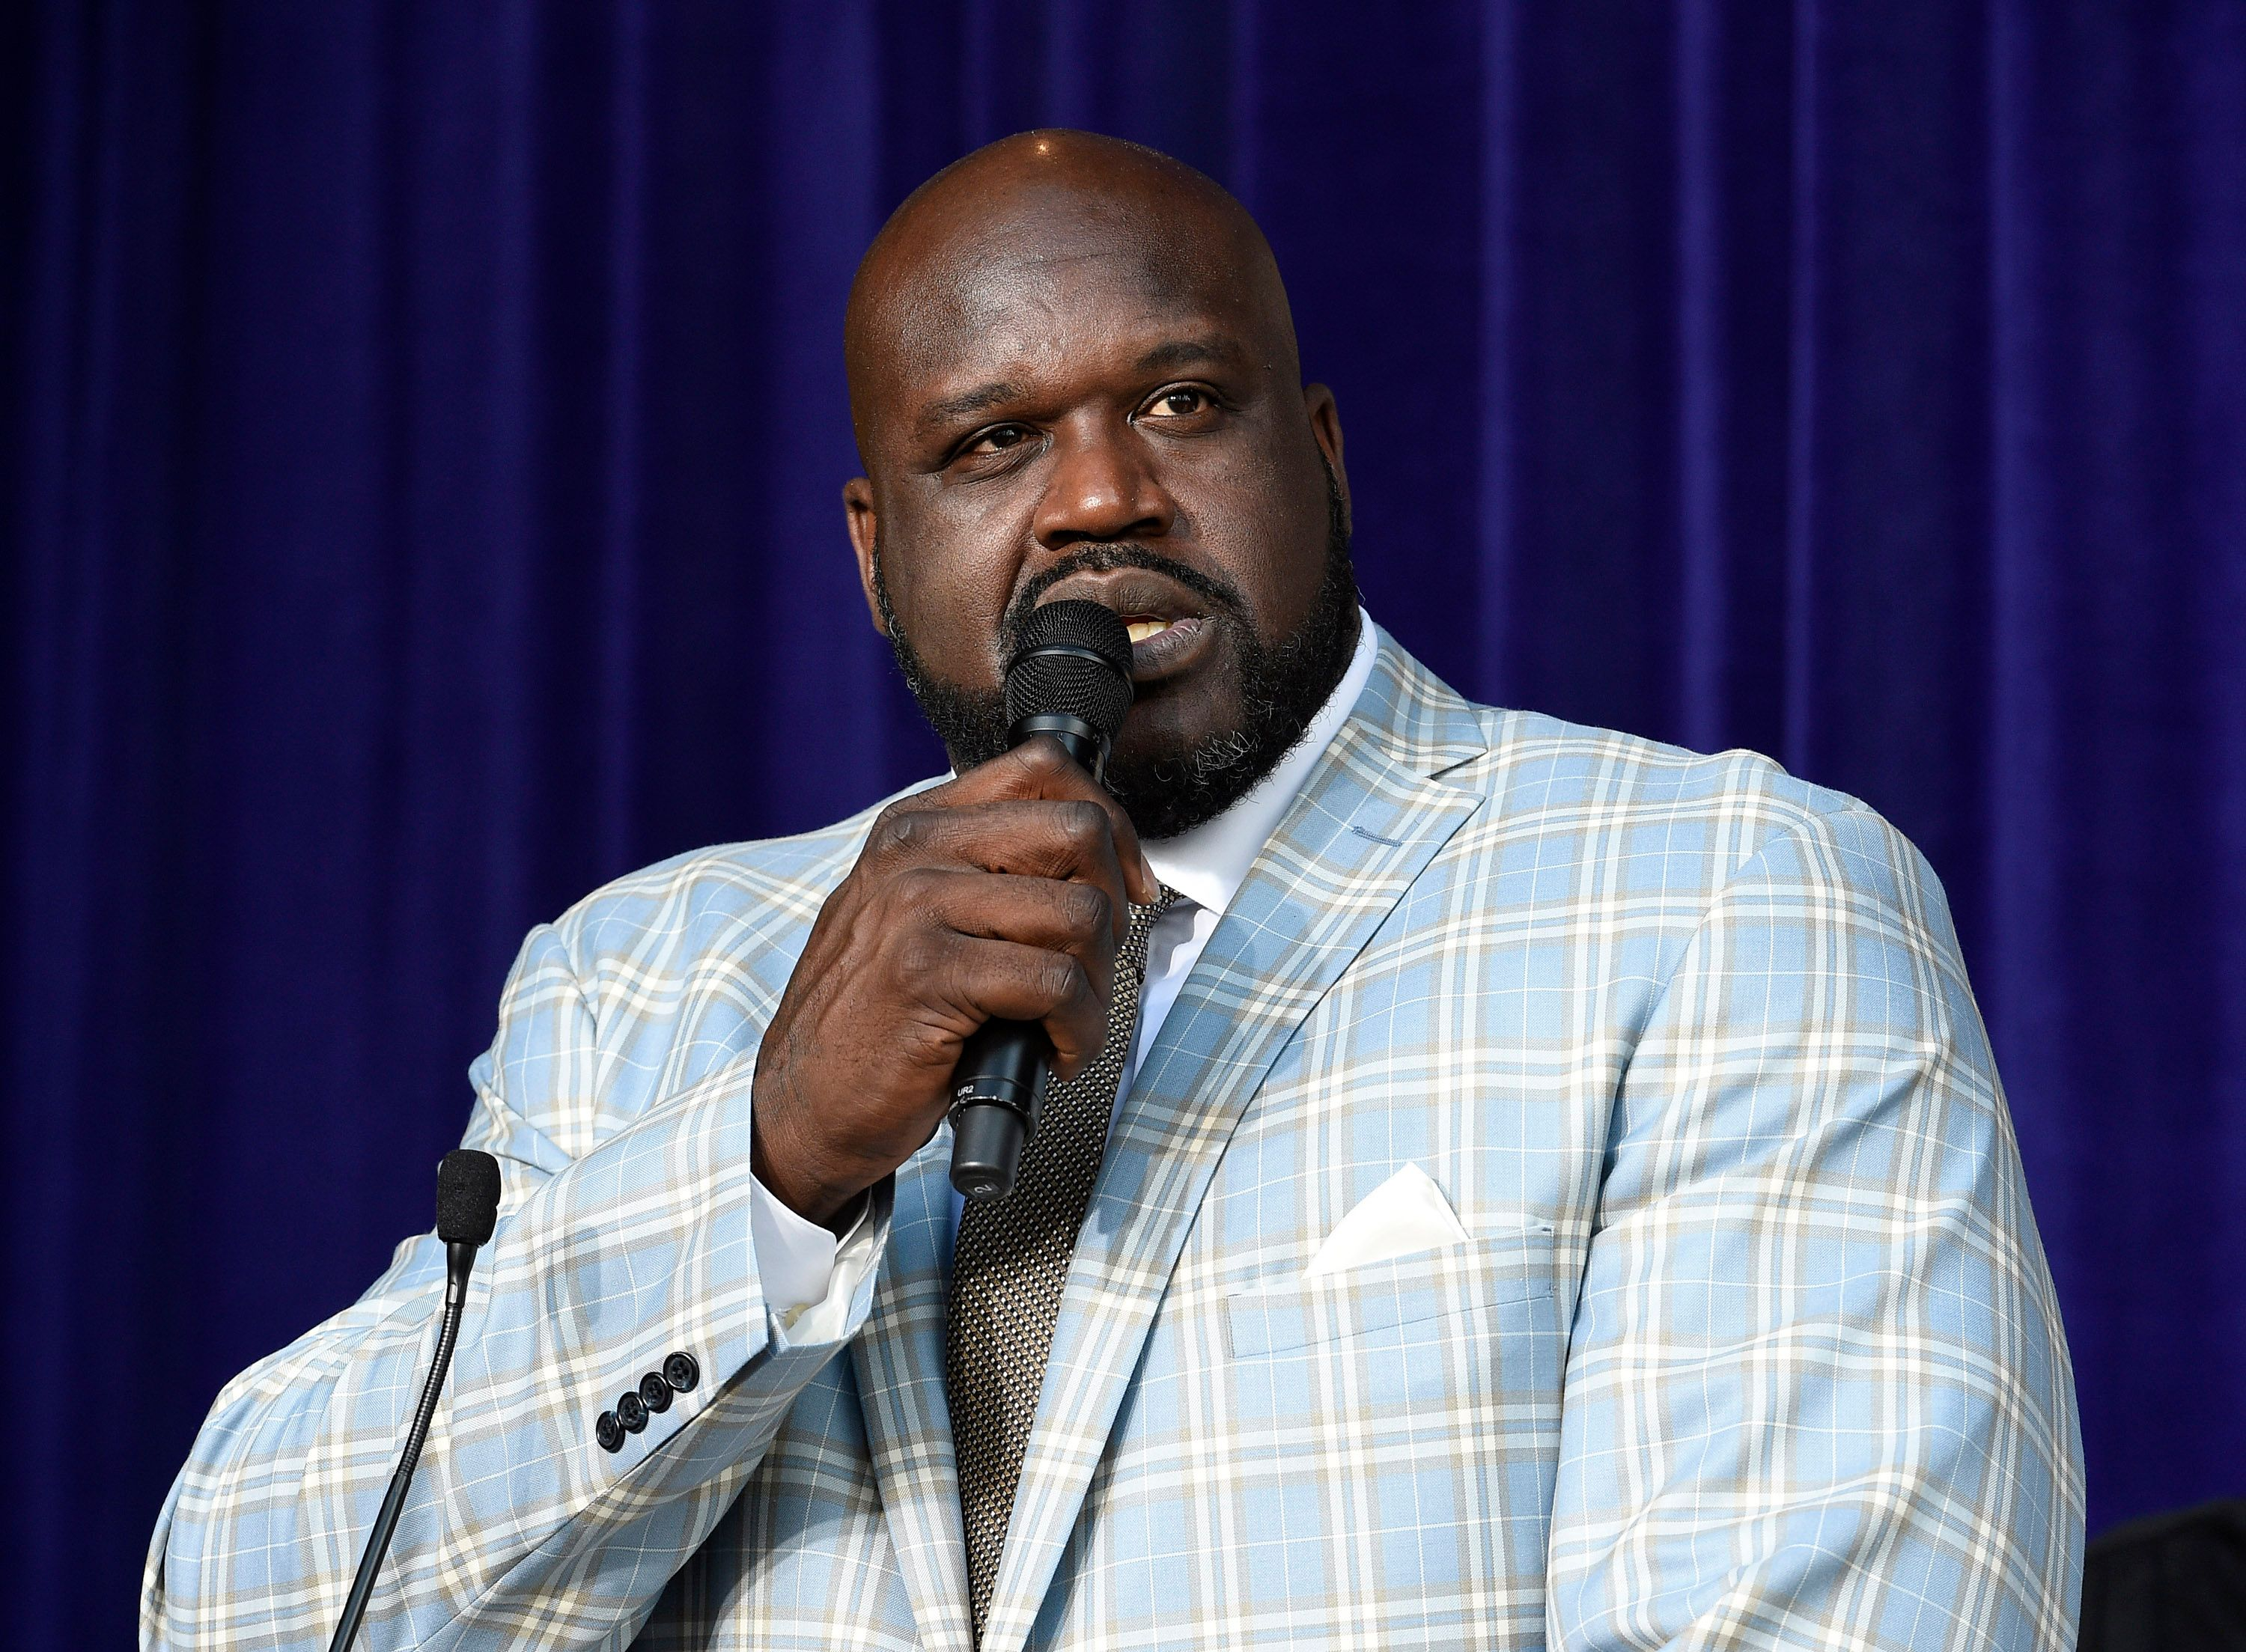 Shaquille O'Neal speaks after unveiling of his statue at Staples Center March 24, 2017, in Los Angeles, California.   Source: Getty Images